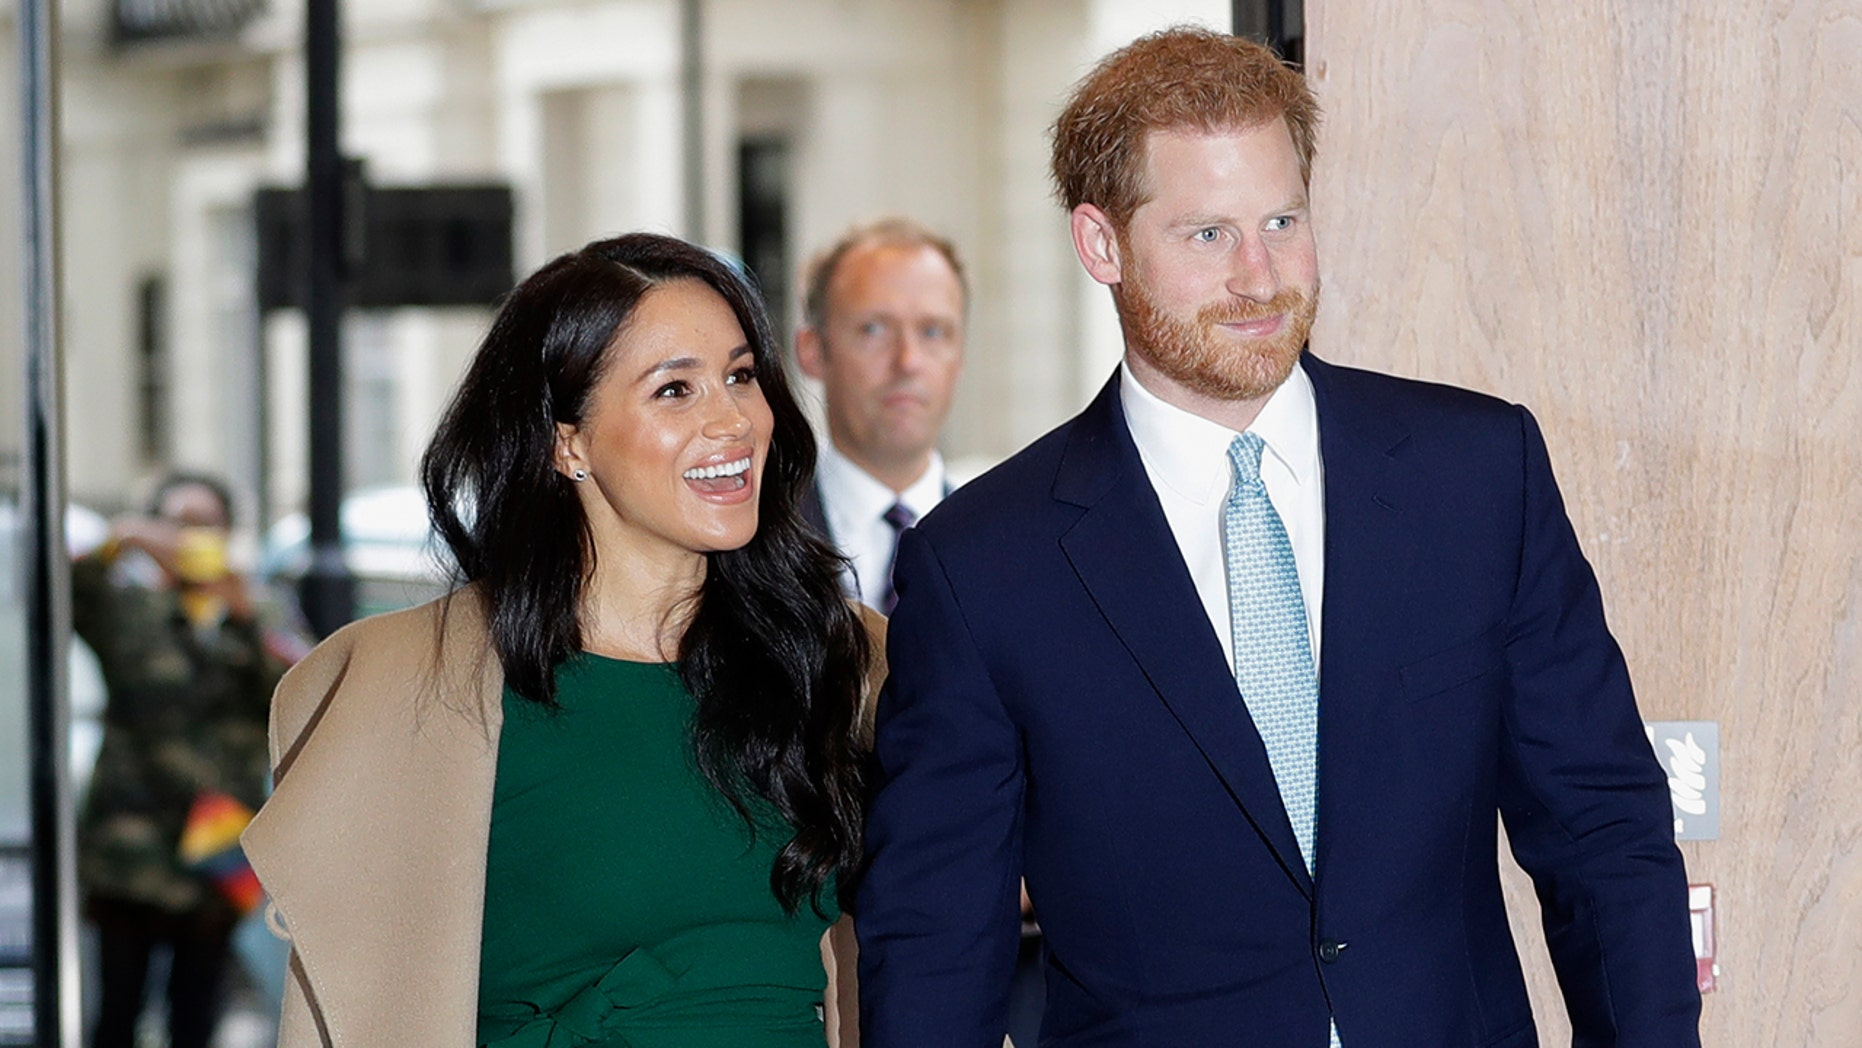 Meghan Markle, Prince Harry will end their royal duties by the end of March